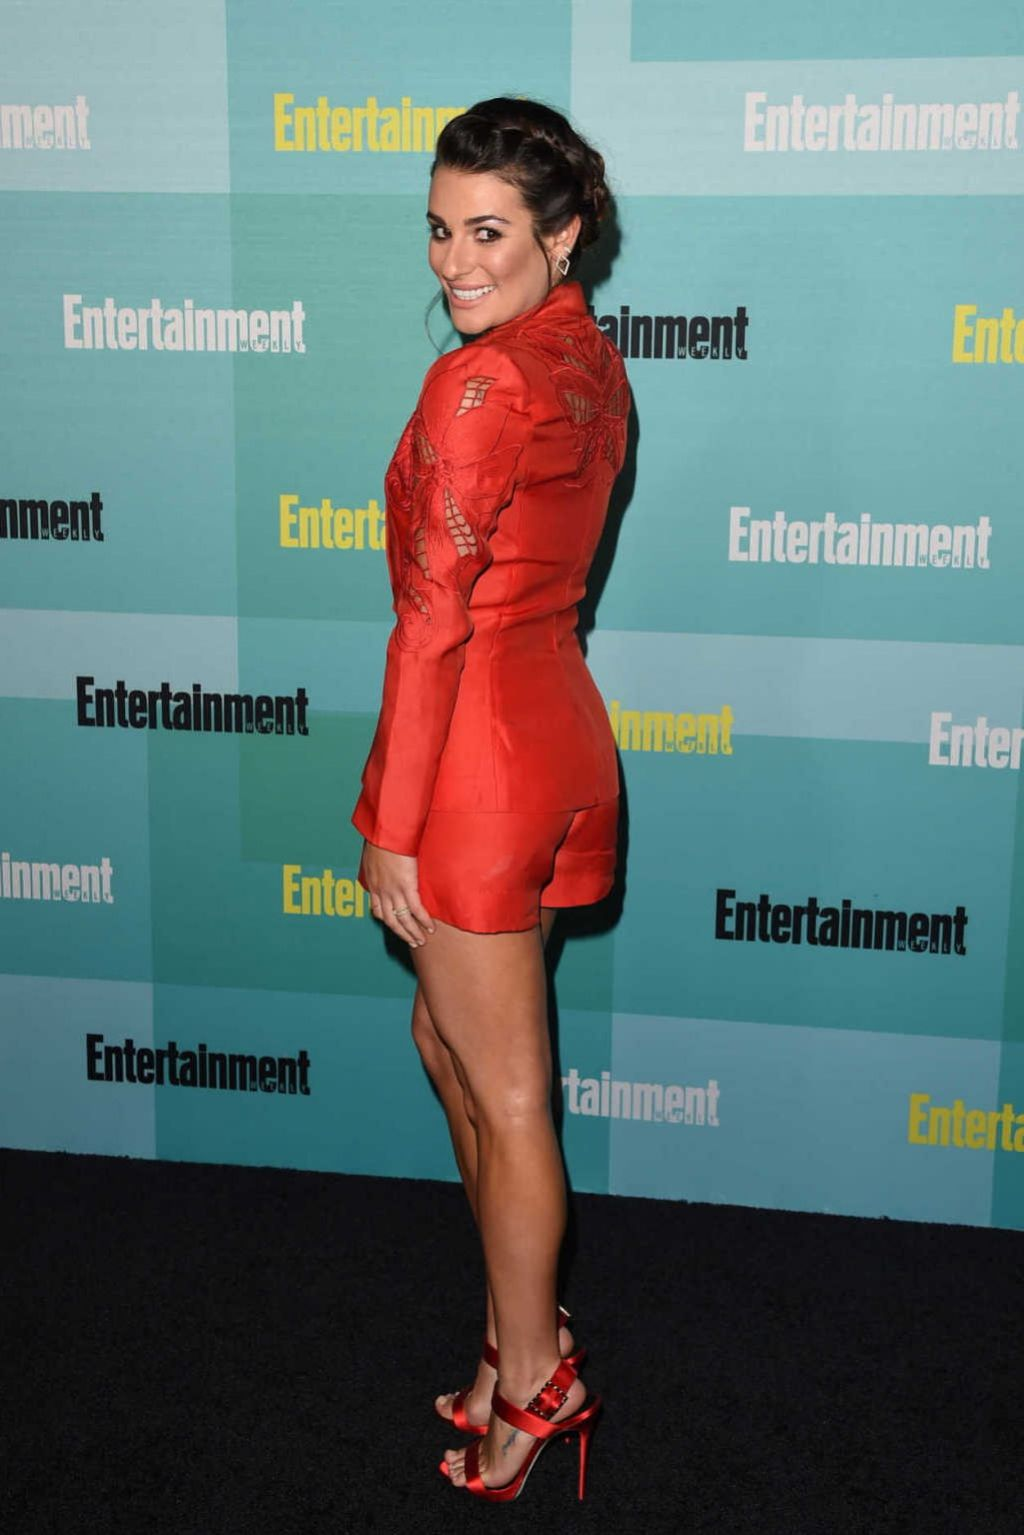 lea-michele-entertainment-weekly-party-at-comic-con-in-san-diego-july-2015_8